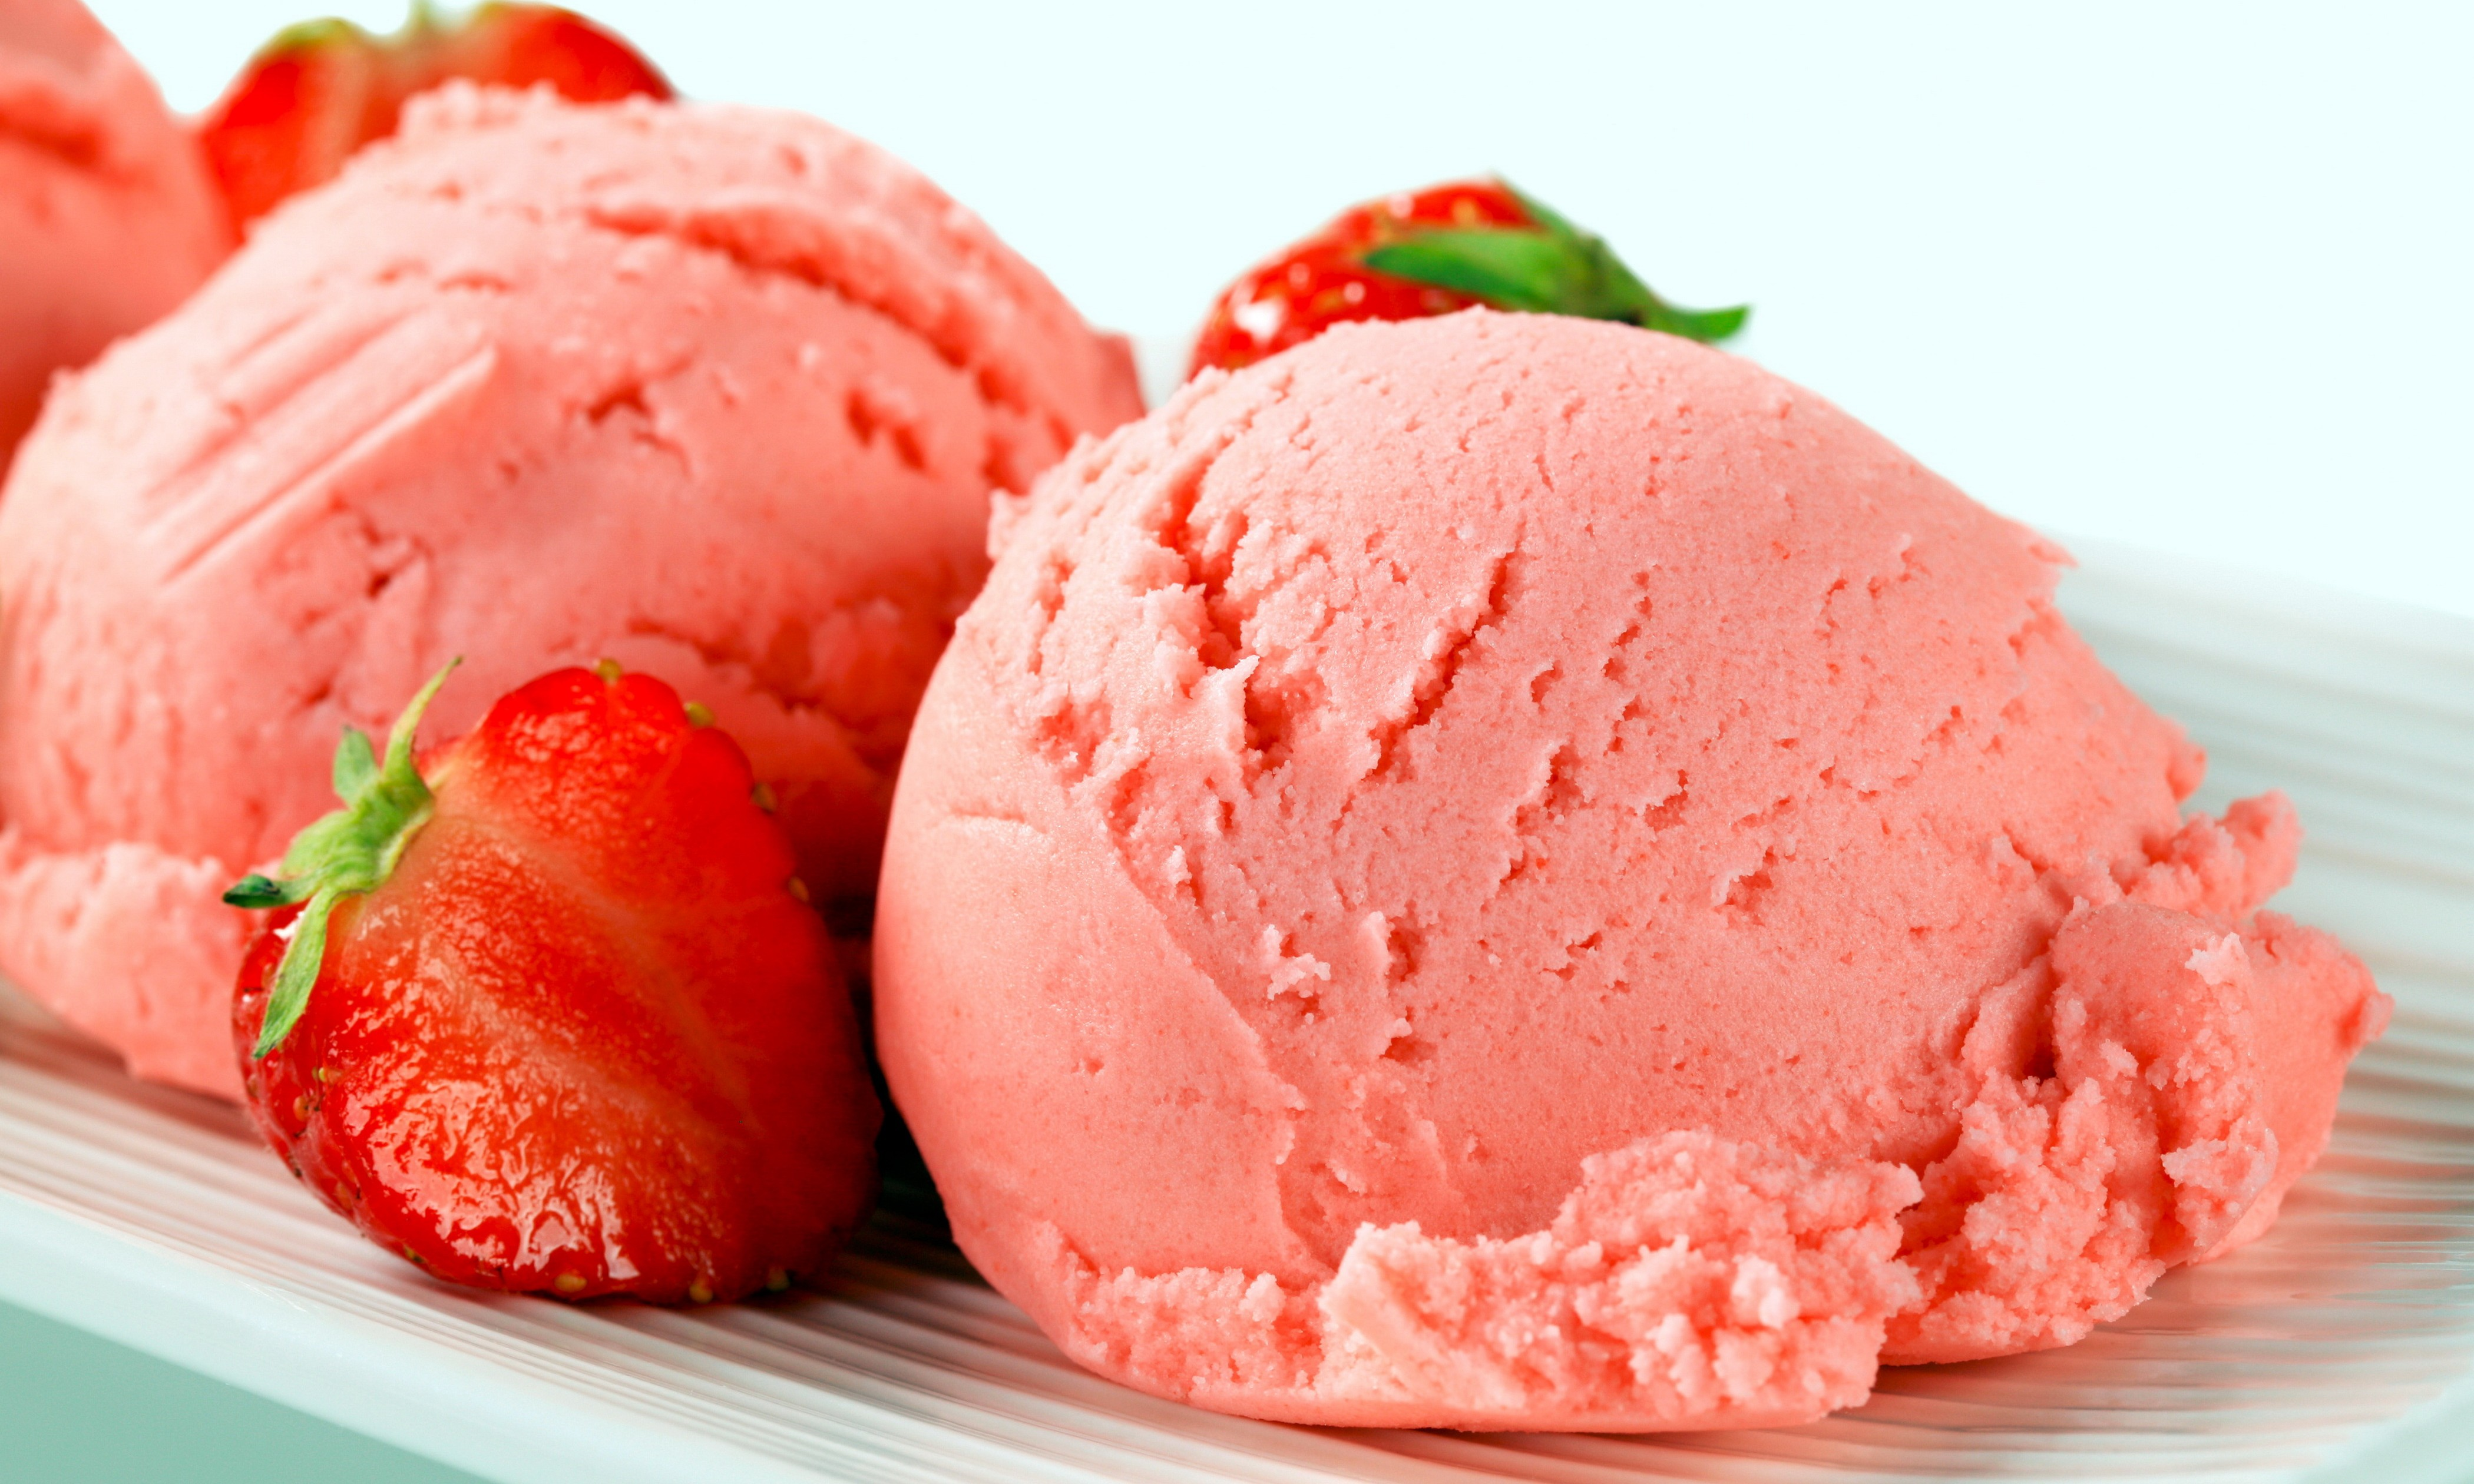 Pareve Strawberry Ice Cream (Kosher for Passover) - OU Kosher Recipes